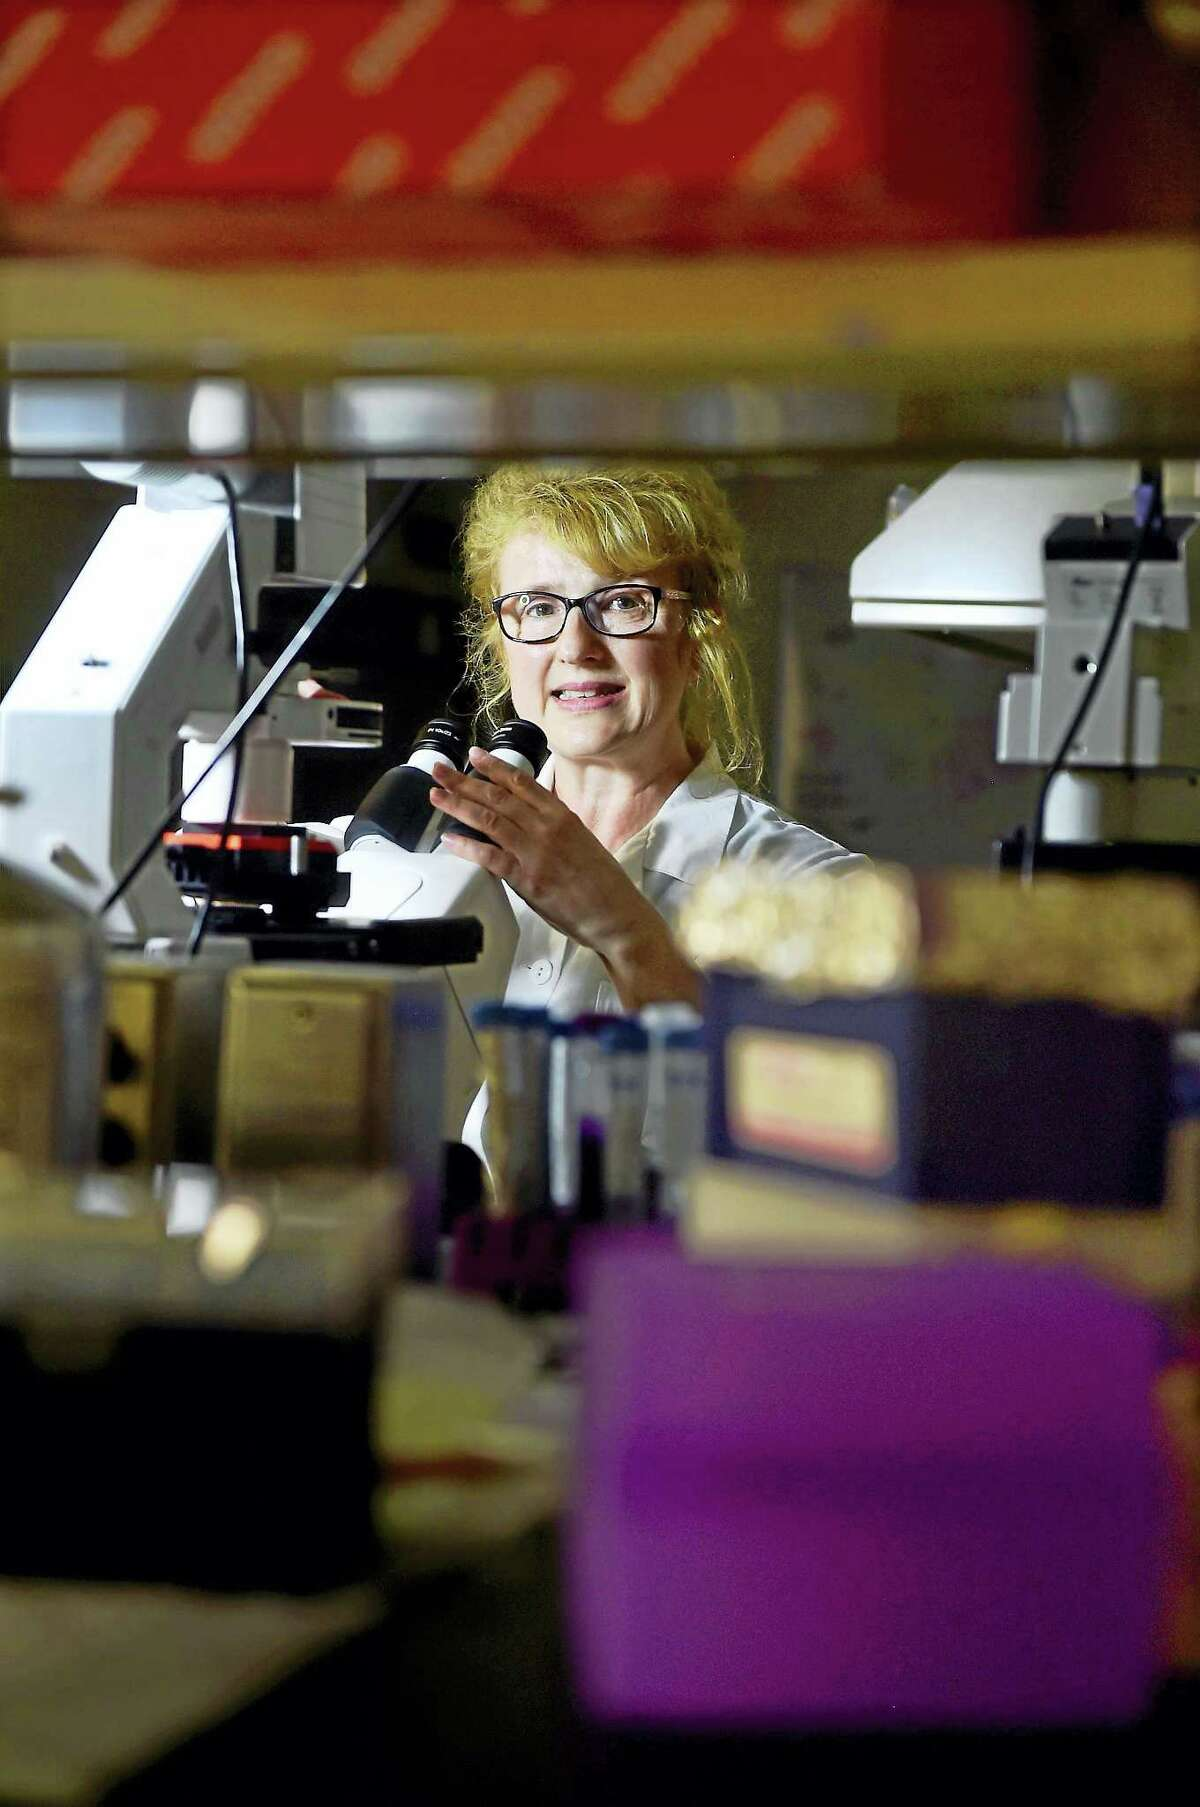 University of New Haven professor Eva Sapi, chairwoman of the Department of Biology and Environmental Science, with an atomic force microscope in the Lyme Disease Research Group lab at UNH.